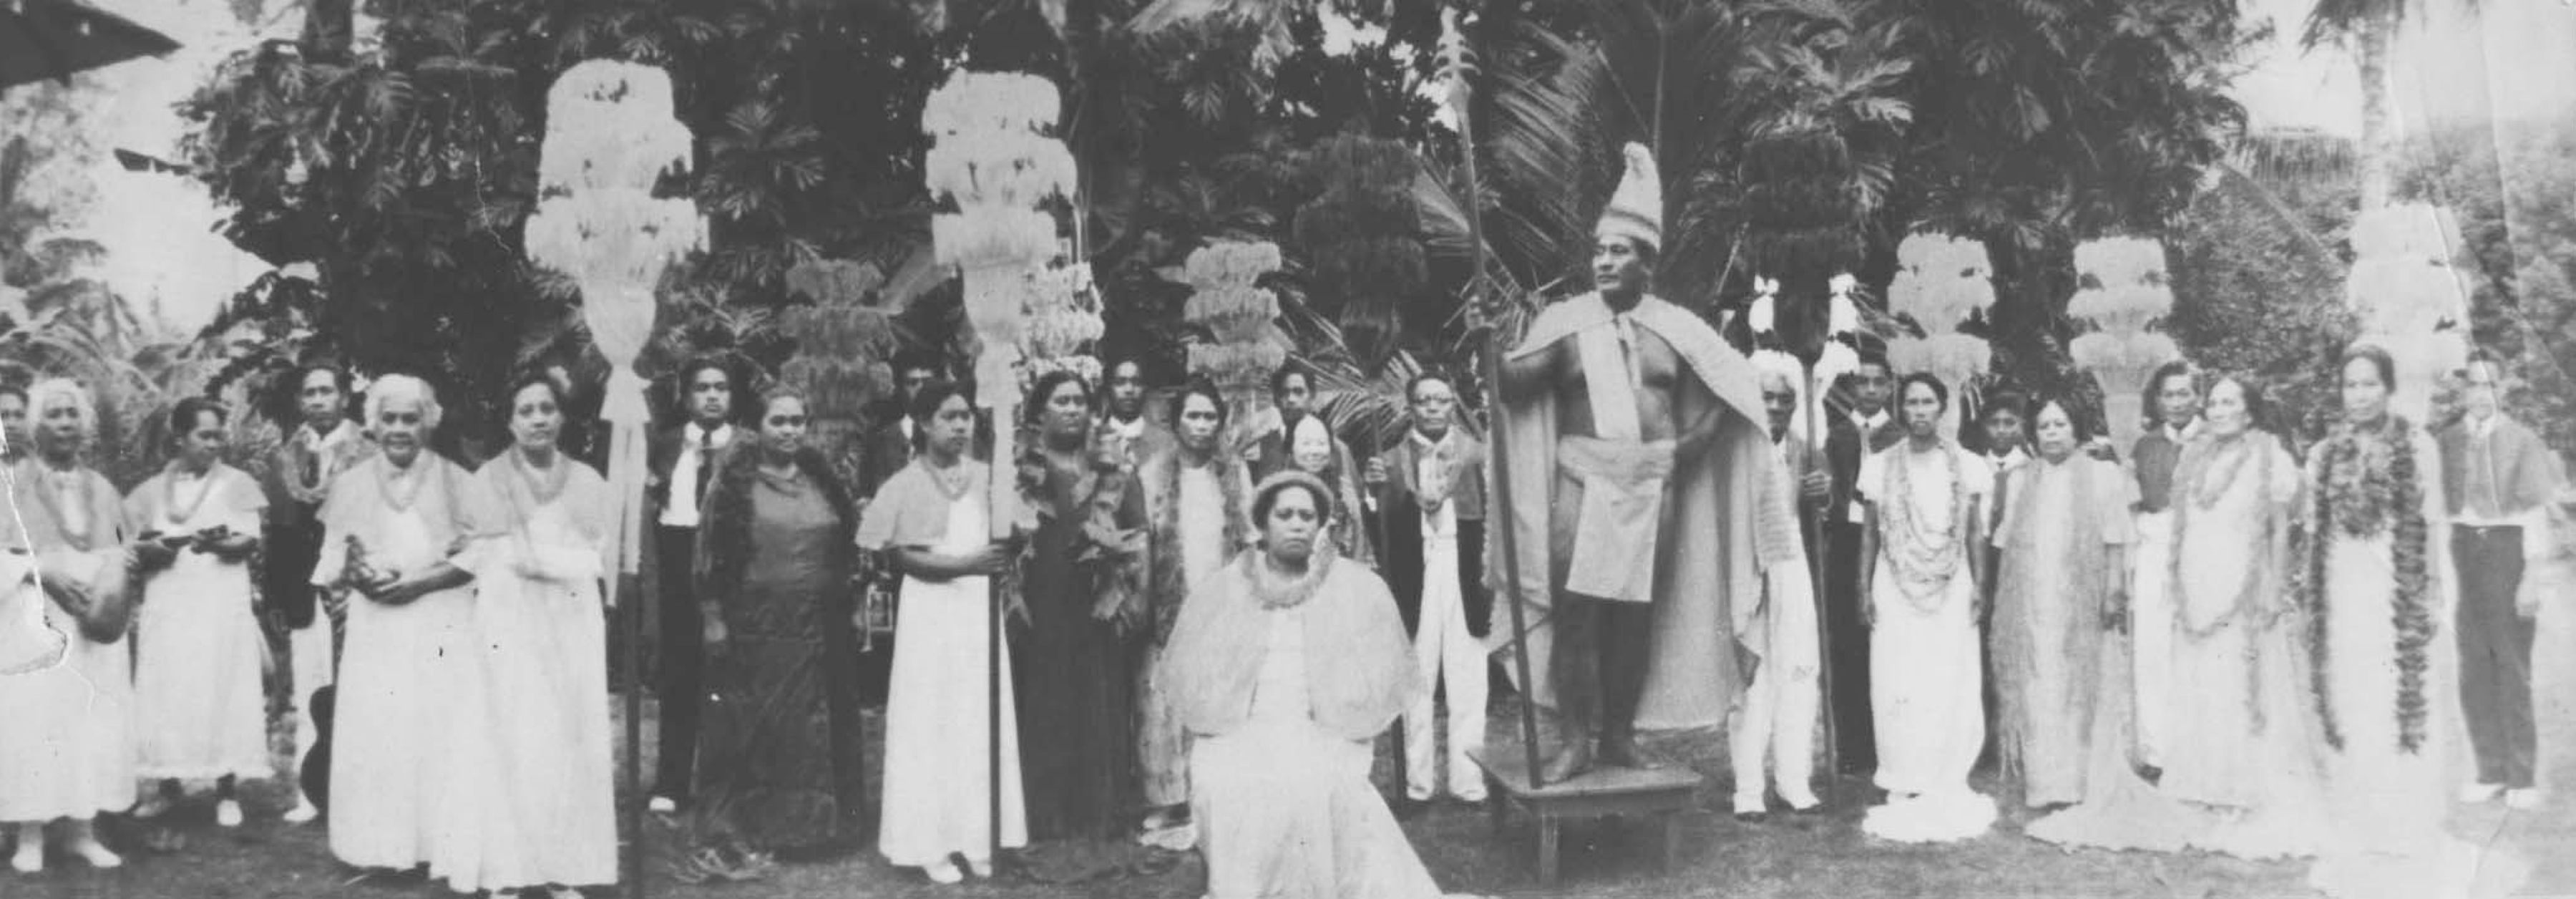 photograph of Hamana Kalili and locals from Laie portraying the royal court of King Kamehameha, with Kalili serving as the king.